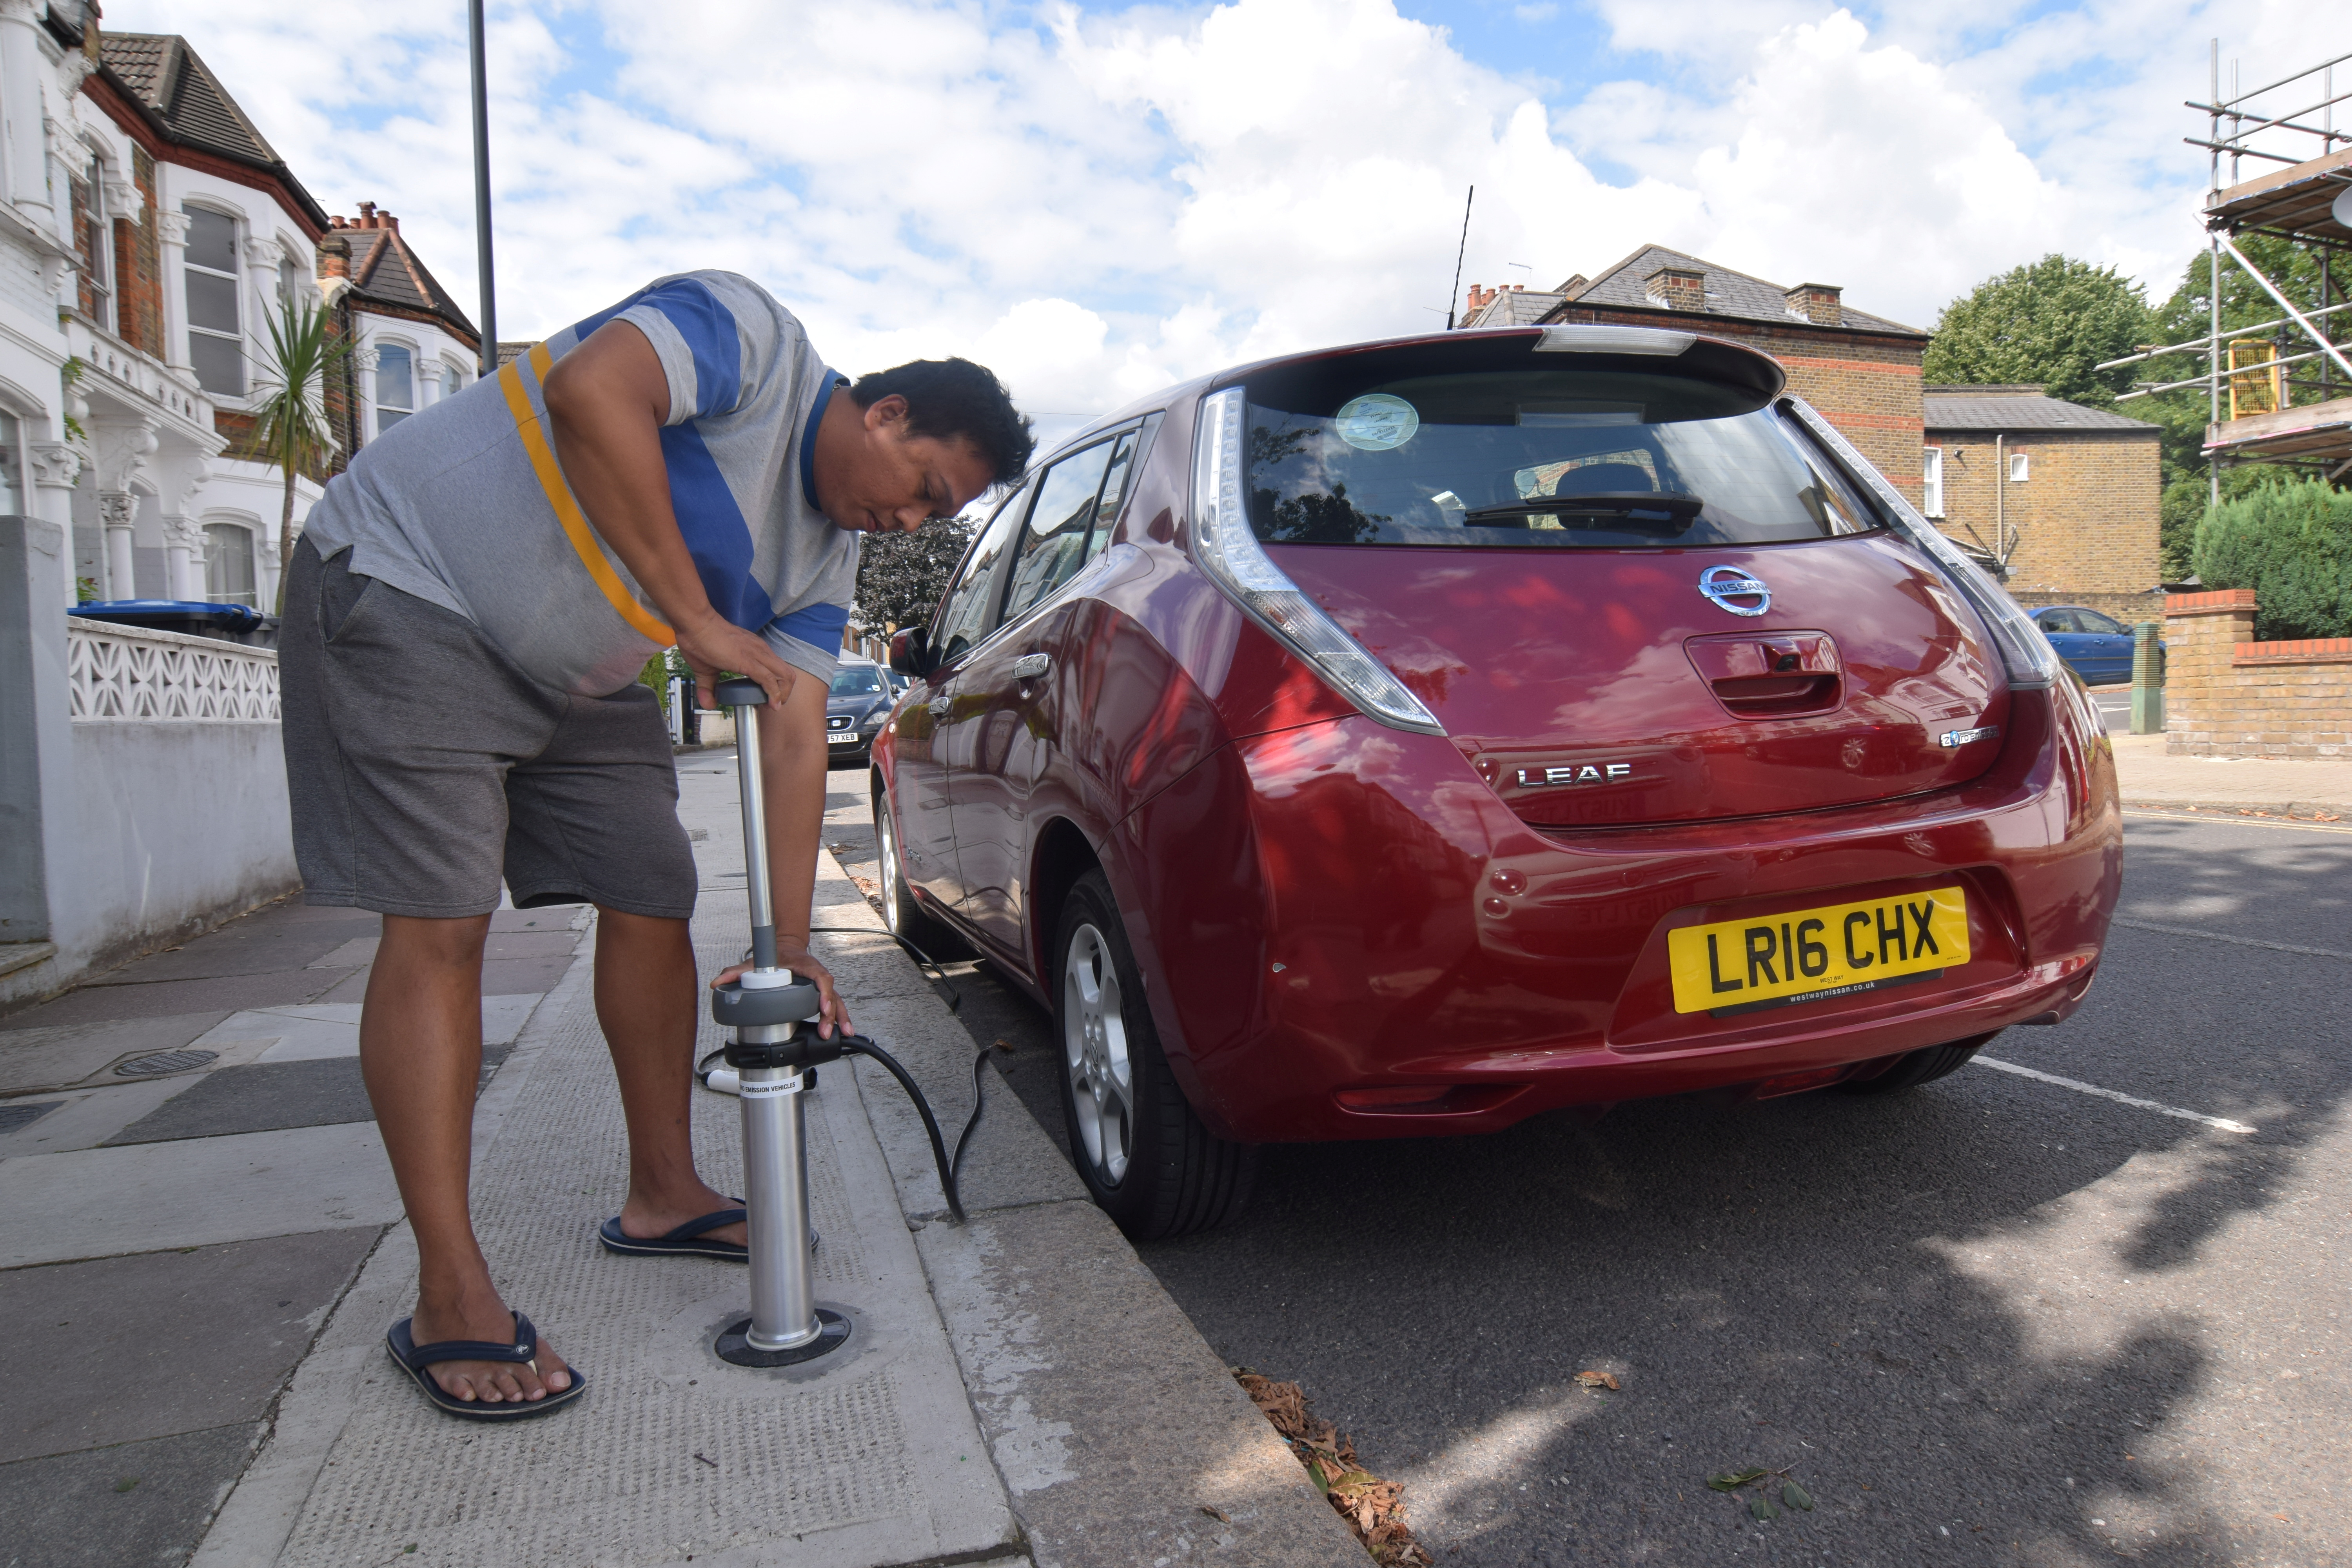 Uber driver Tim Win demonstrates plugging his fully-electric Nissan Leaf into an on-street residential electric vehicle charging system developed by startup Trojan Energy in London, Britain, August 2, 2021. REUTERS/Nick Carey